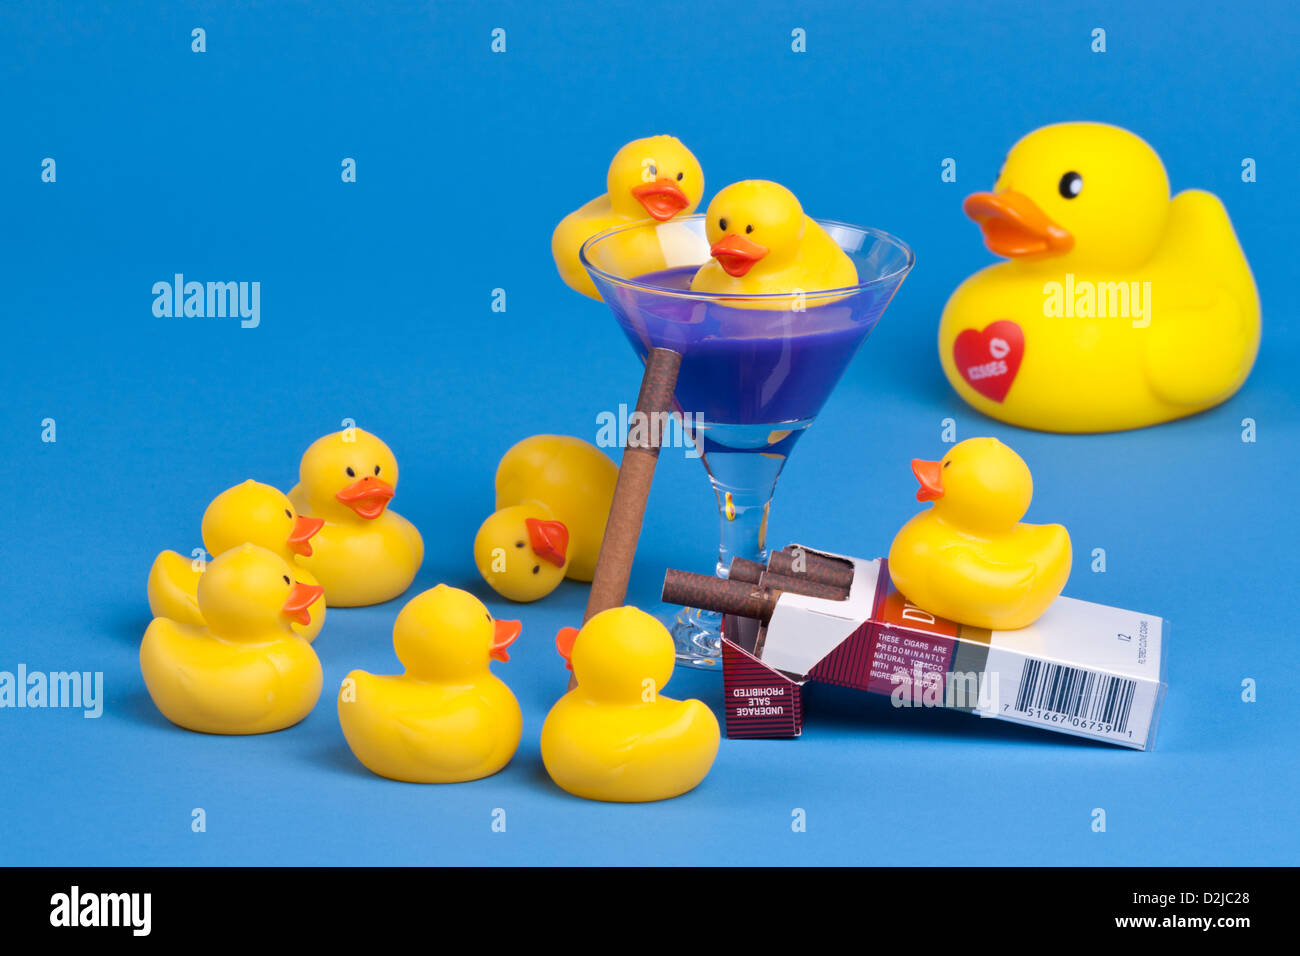 Rubber Ducky Humor Stock Photos Images Natural Duck Yellow Ducks Partying With Cigars And Alcohol Image